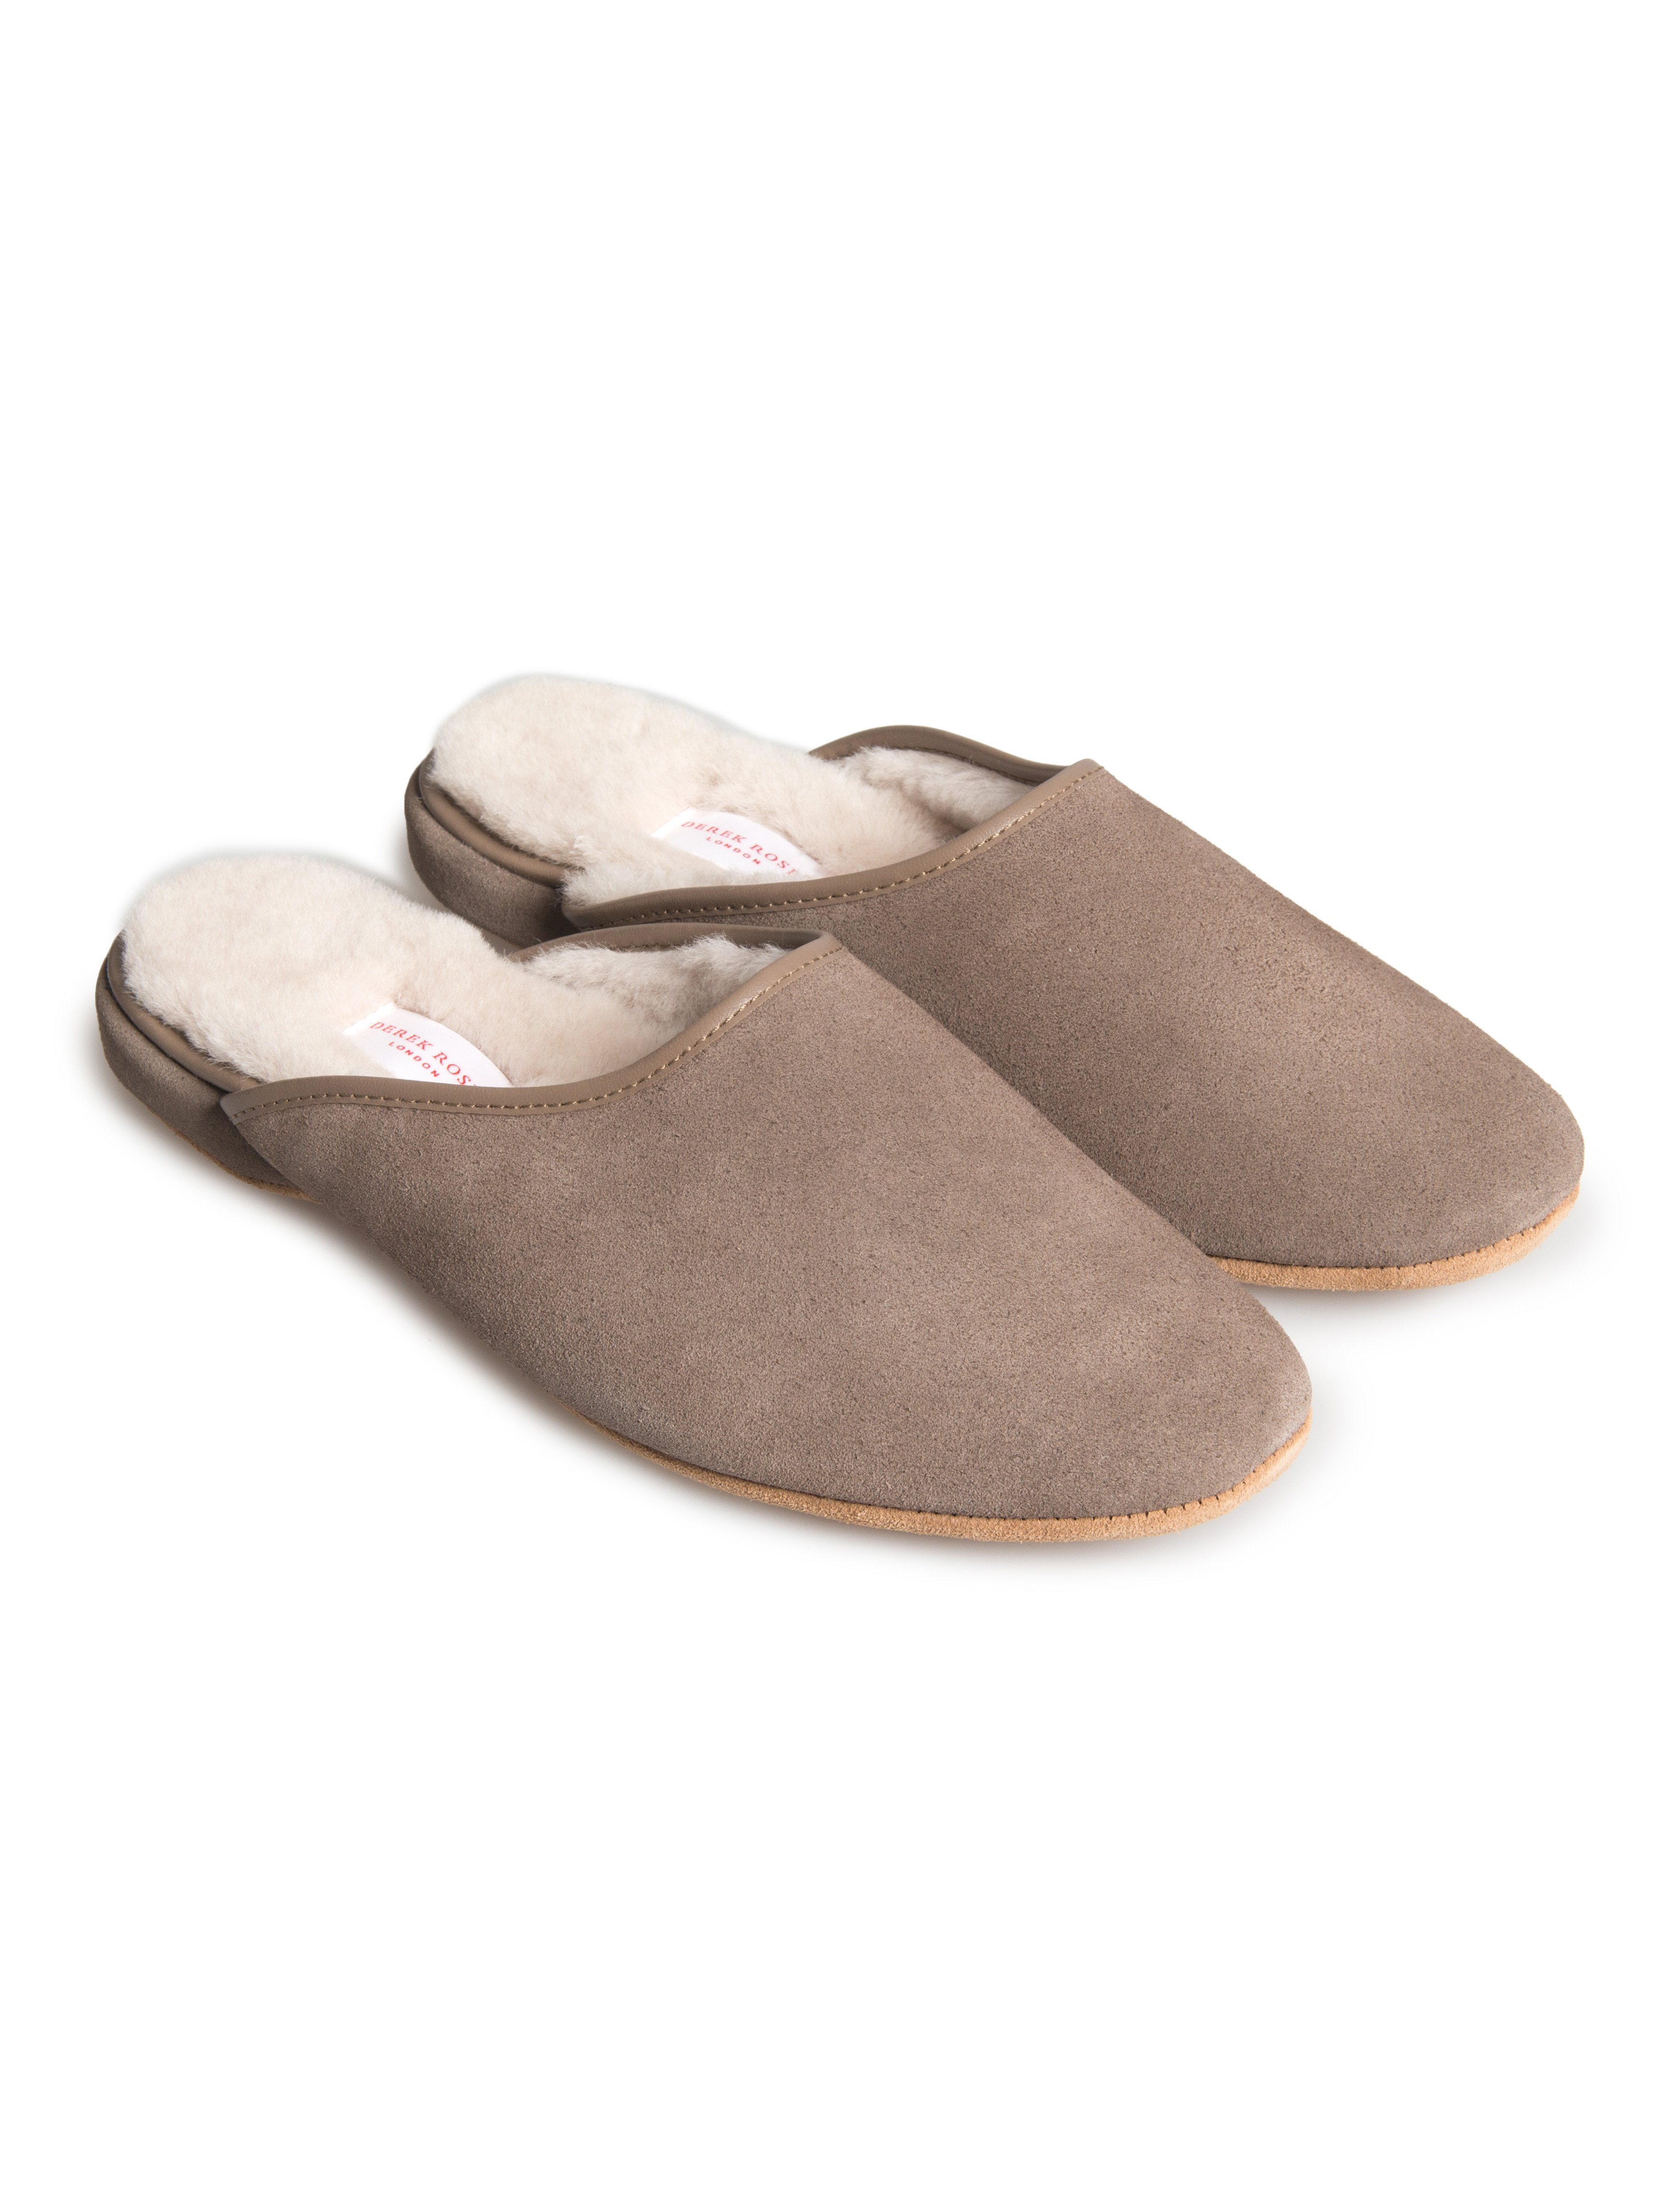 Men's Open-Back Slipper Douglas Suede Sheepskin Beige